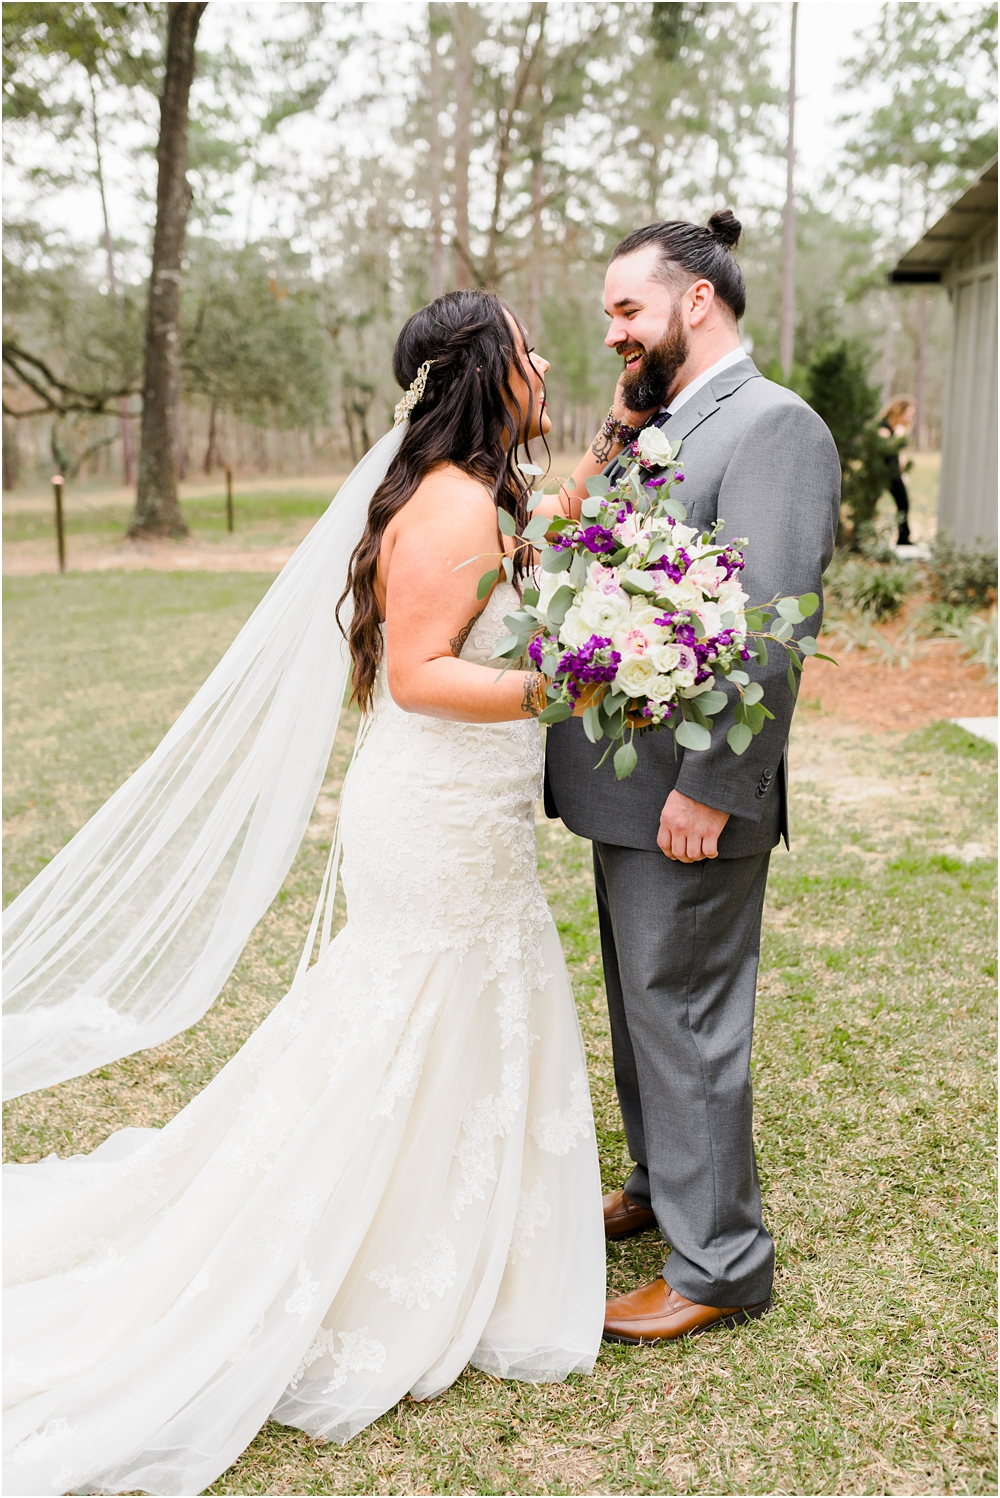 loblolly-rise-tallahassee-wedding-kiersten-stevenson-photography-52.jpg